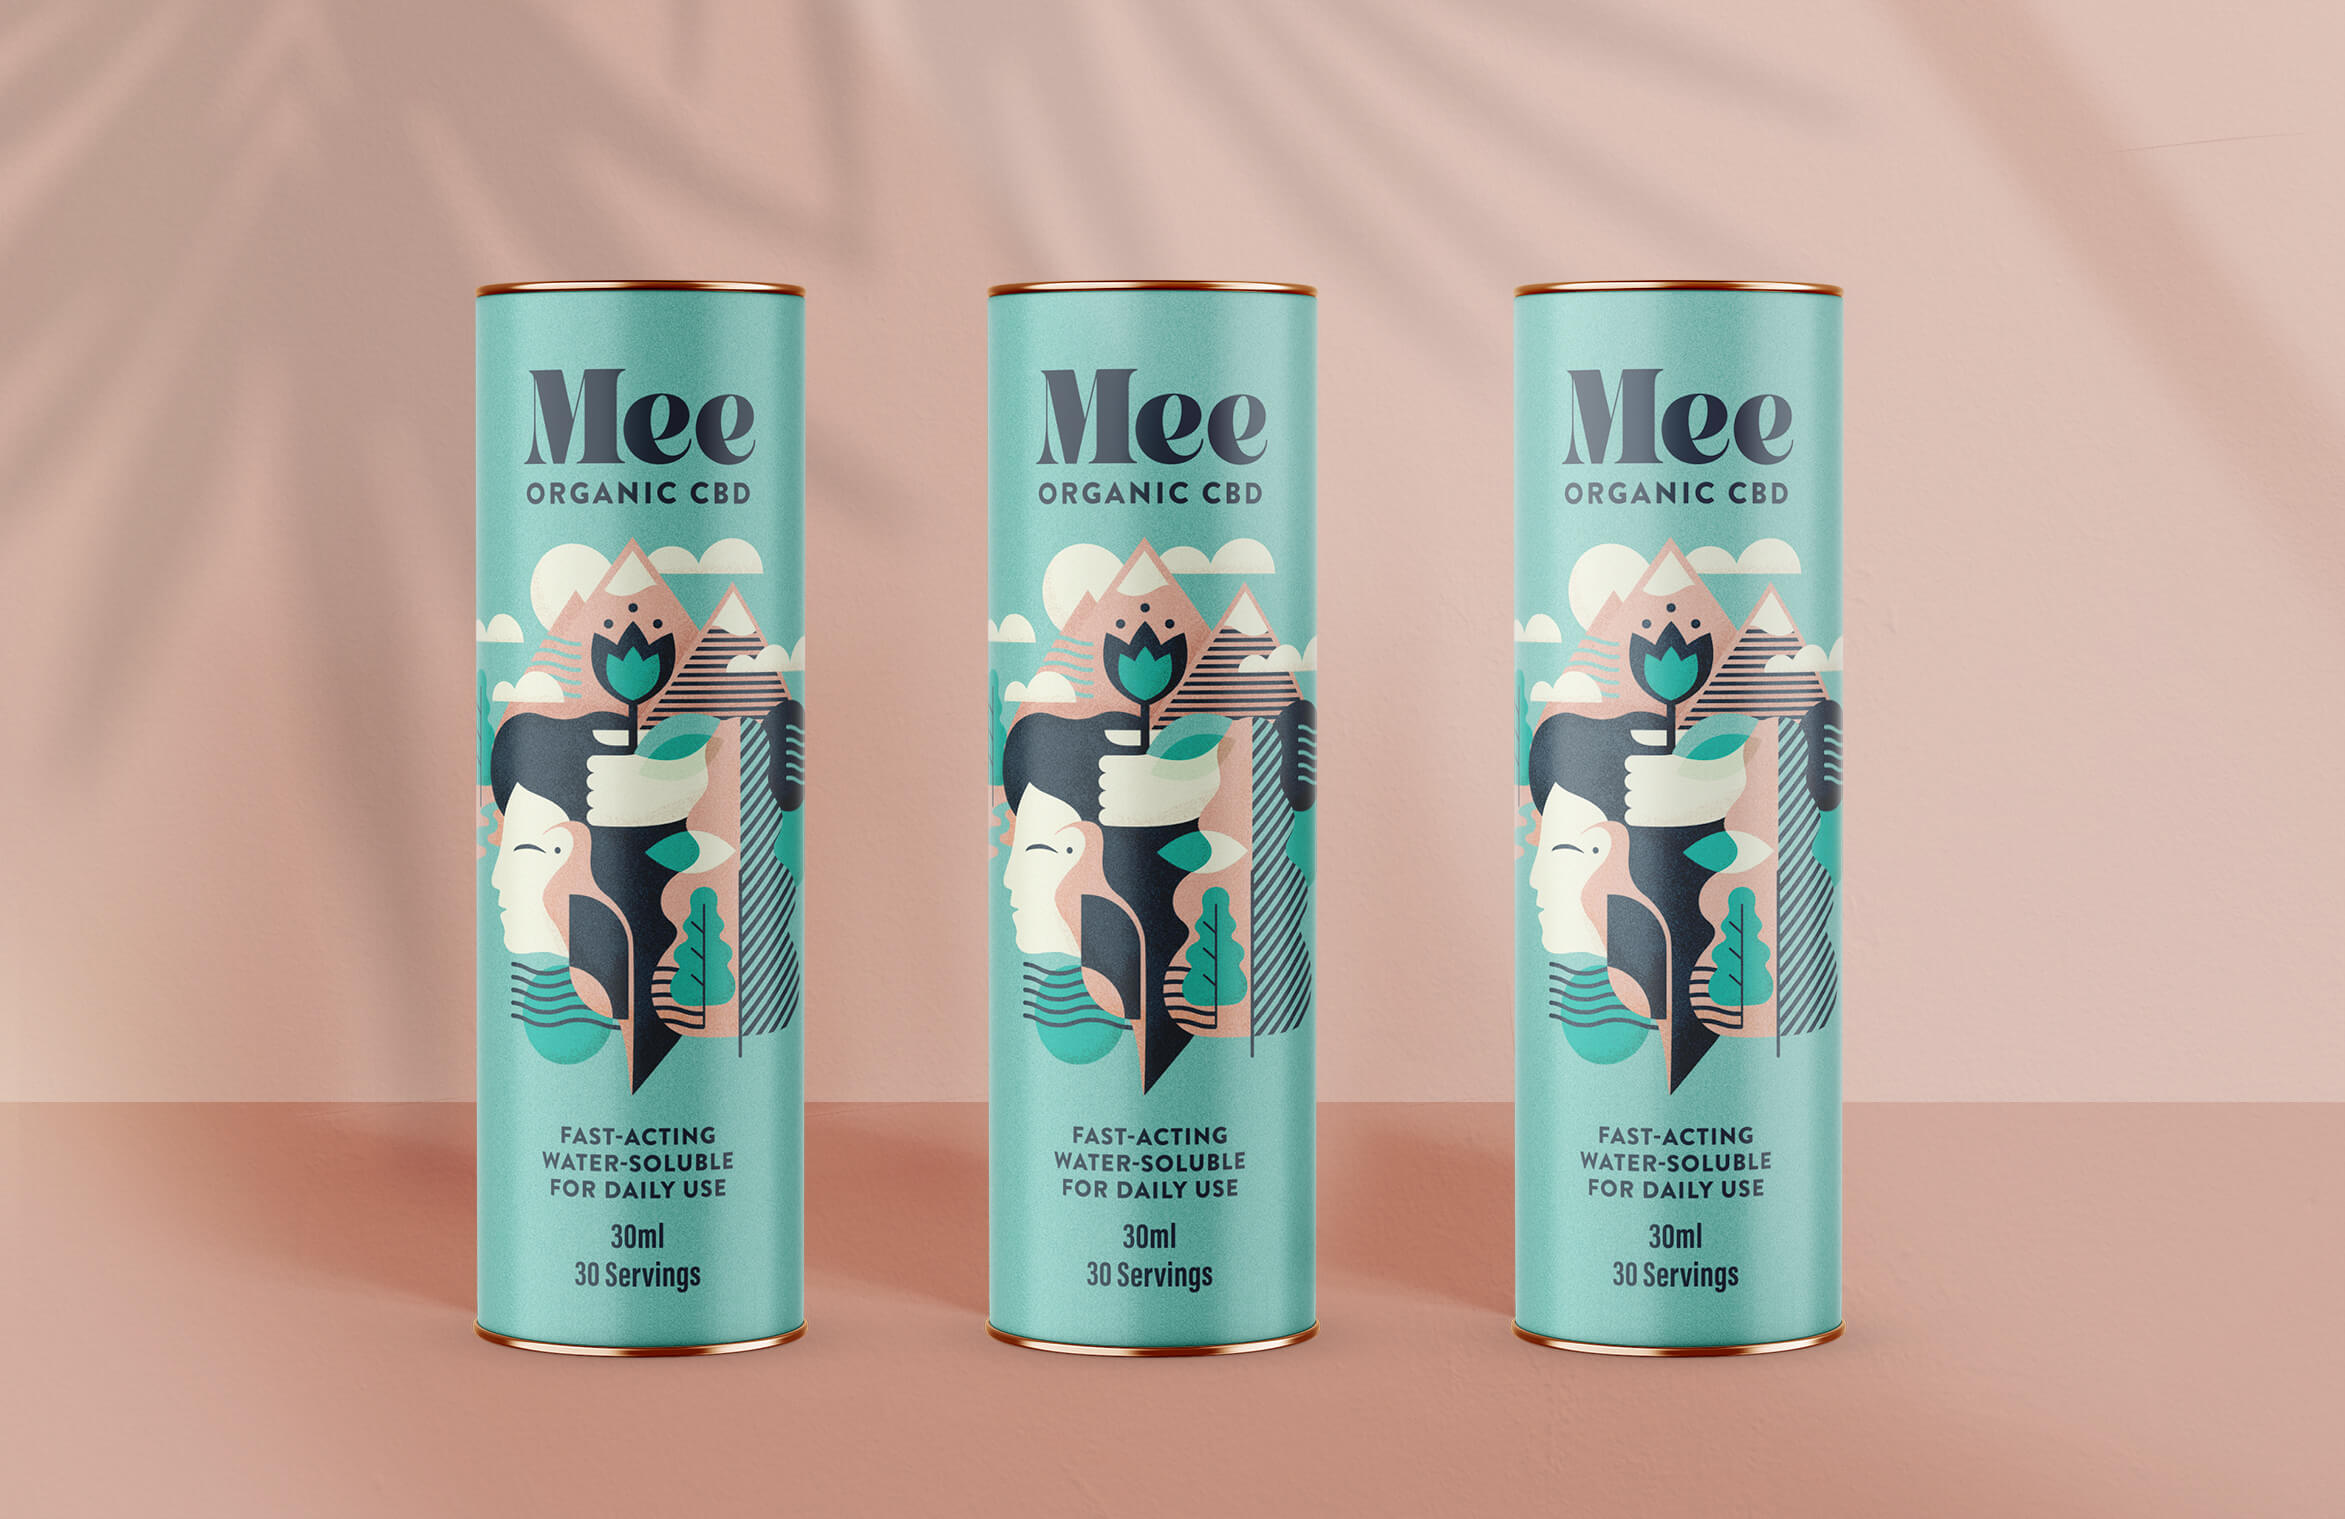 The Space Creative Brings CBD to the Mainstream with the Launch of Mee